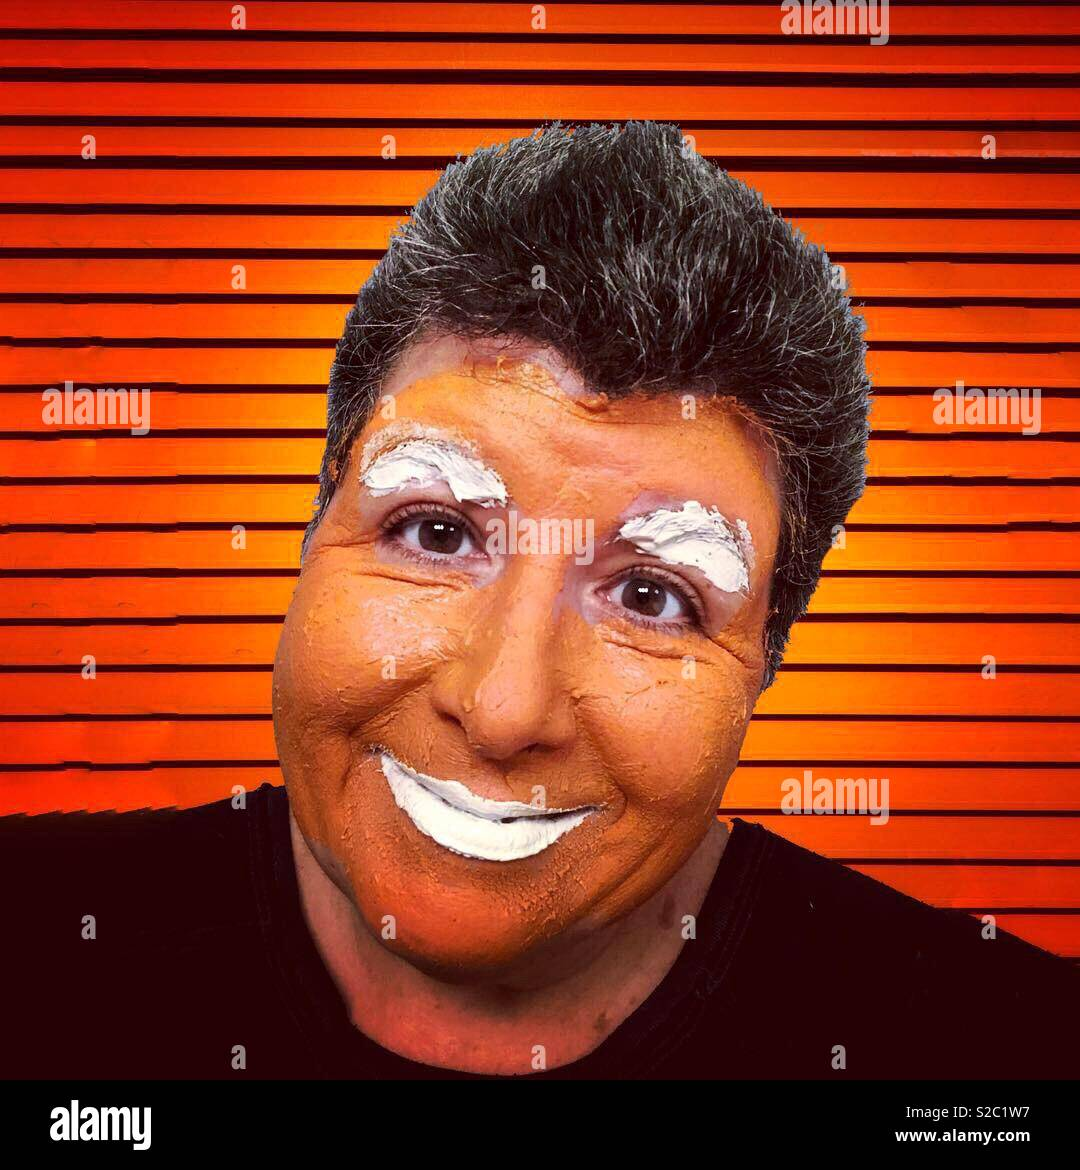 A comical self portrait of a dark haired woman wearing an orange face mask against an orange background - Stock Image